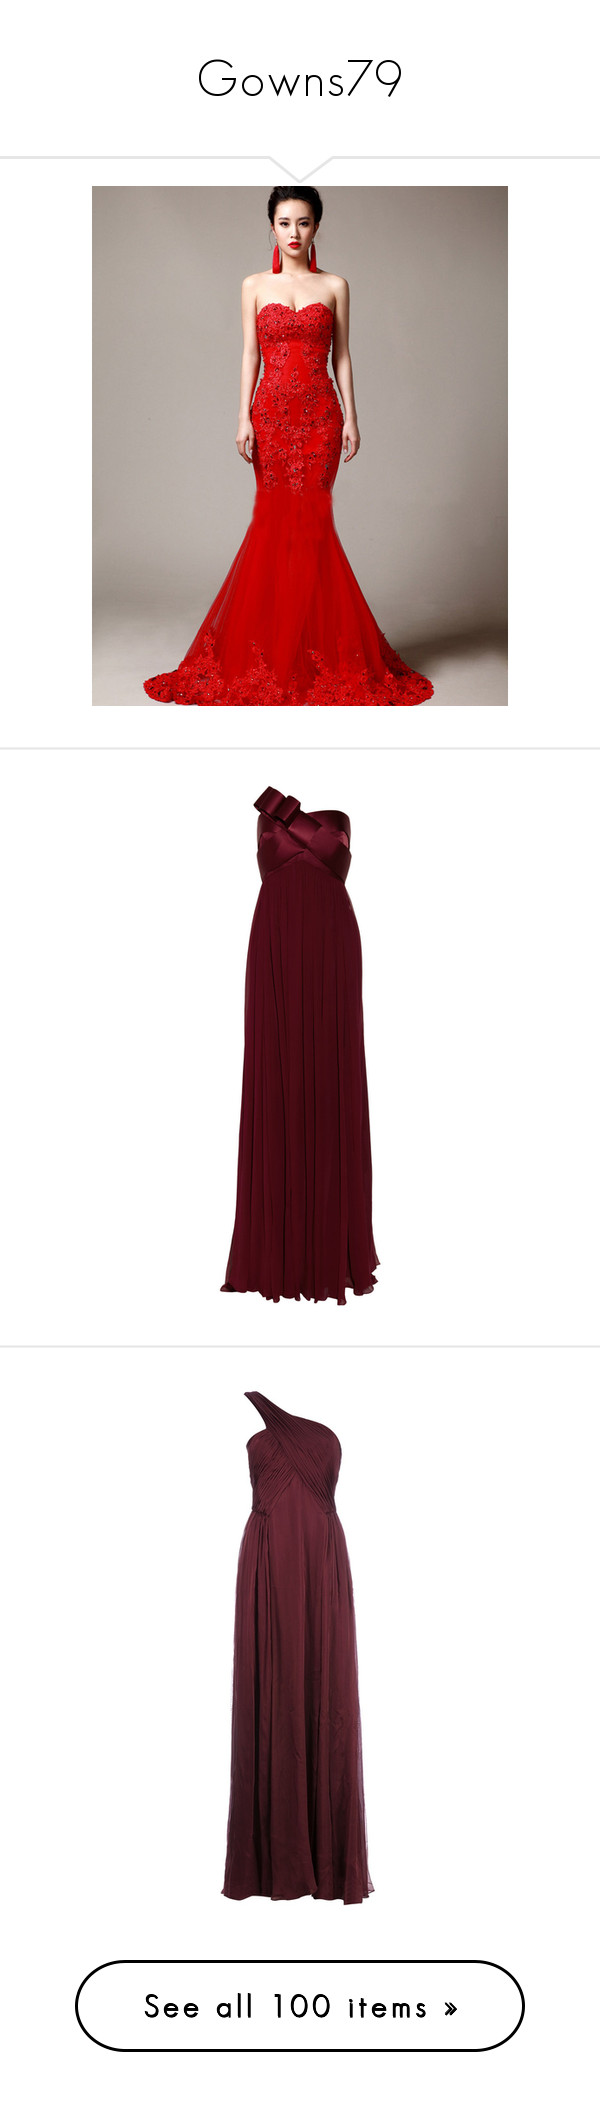 Red ball gown wedding dress  Gowns